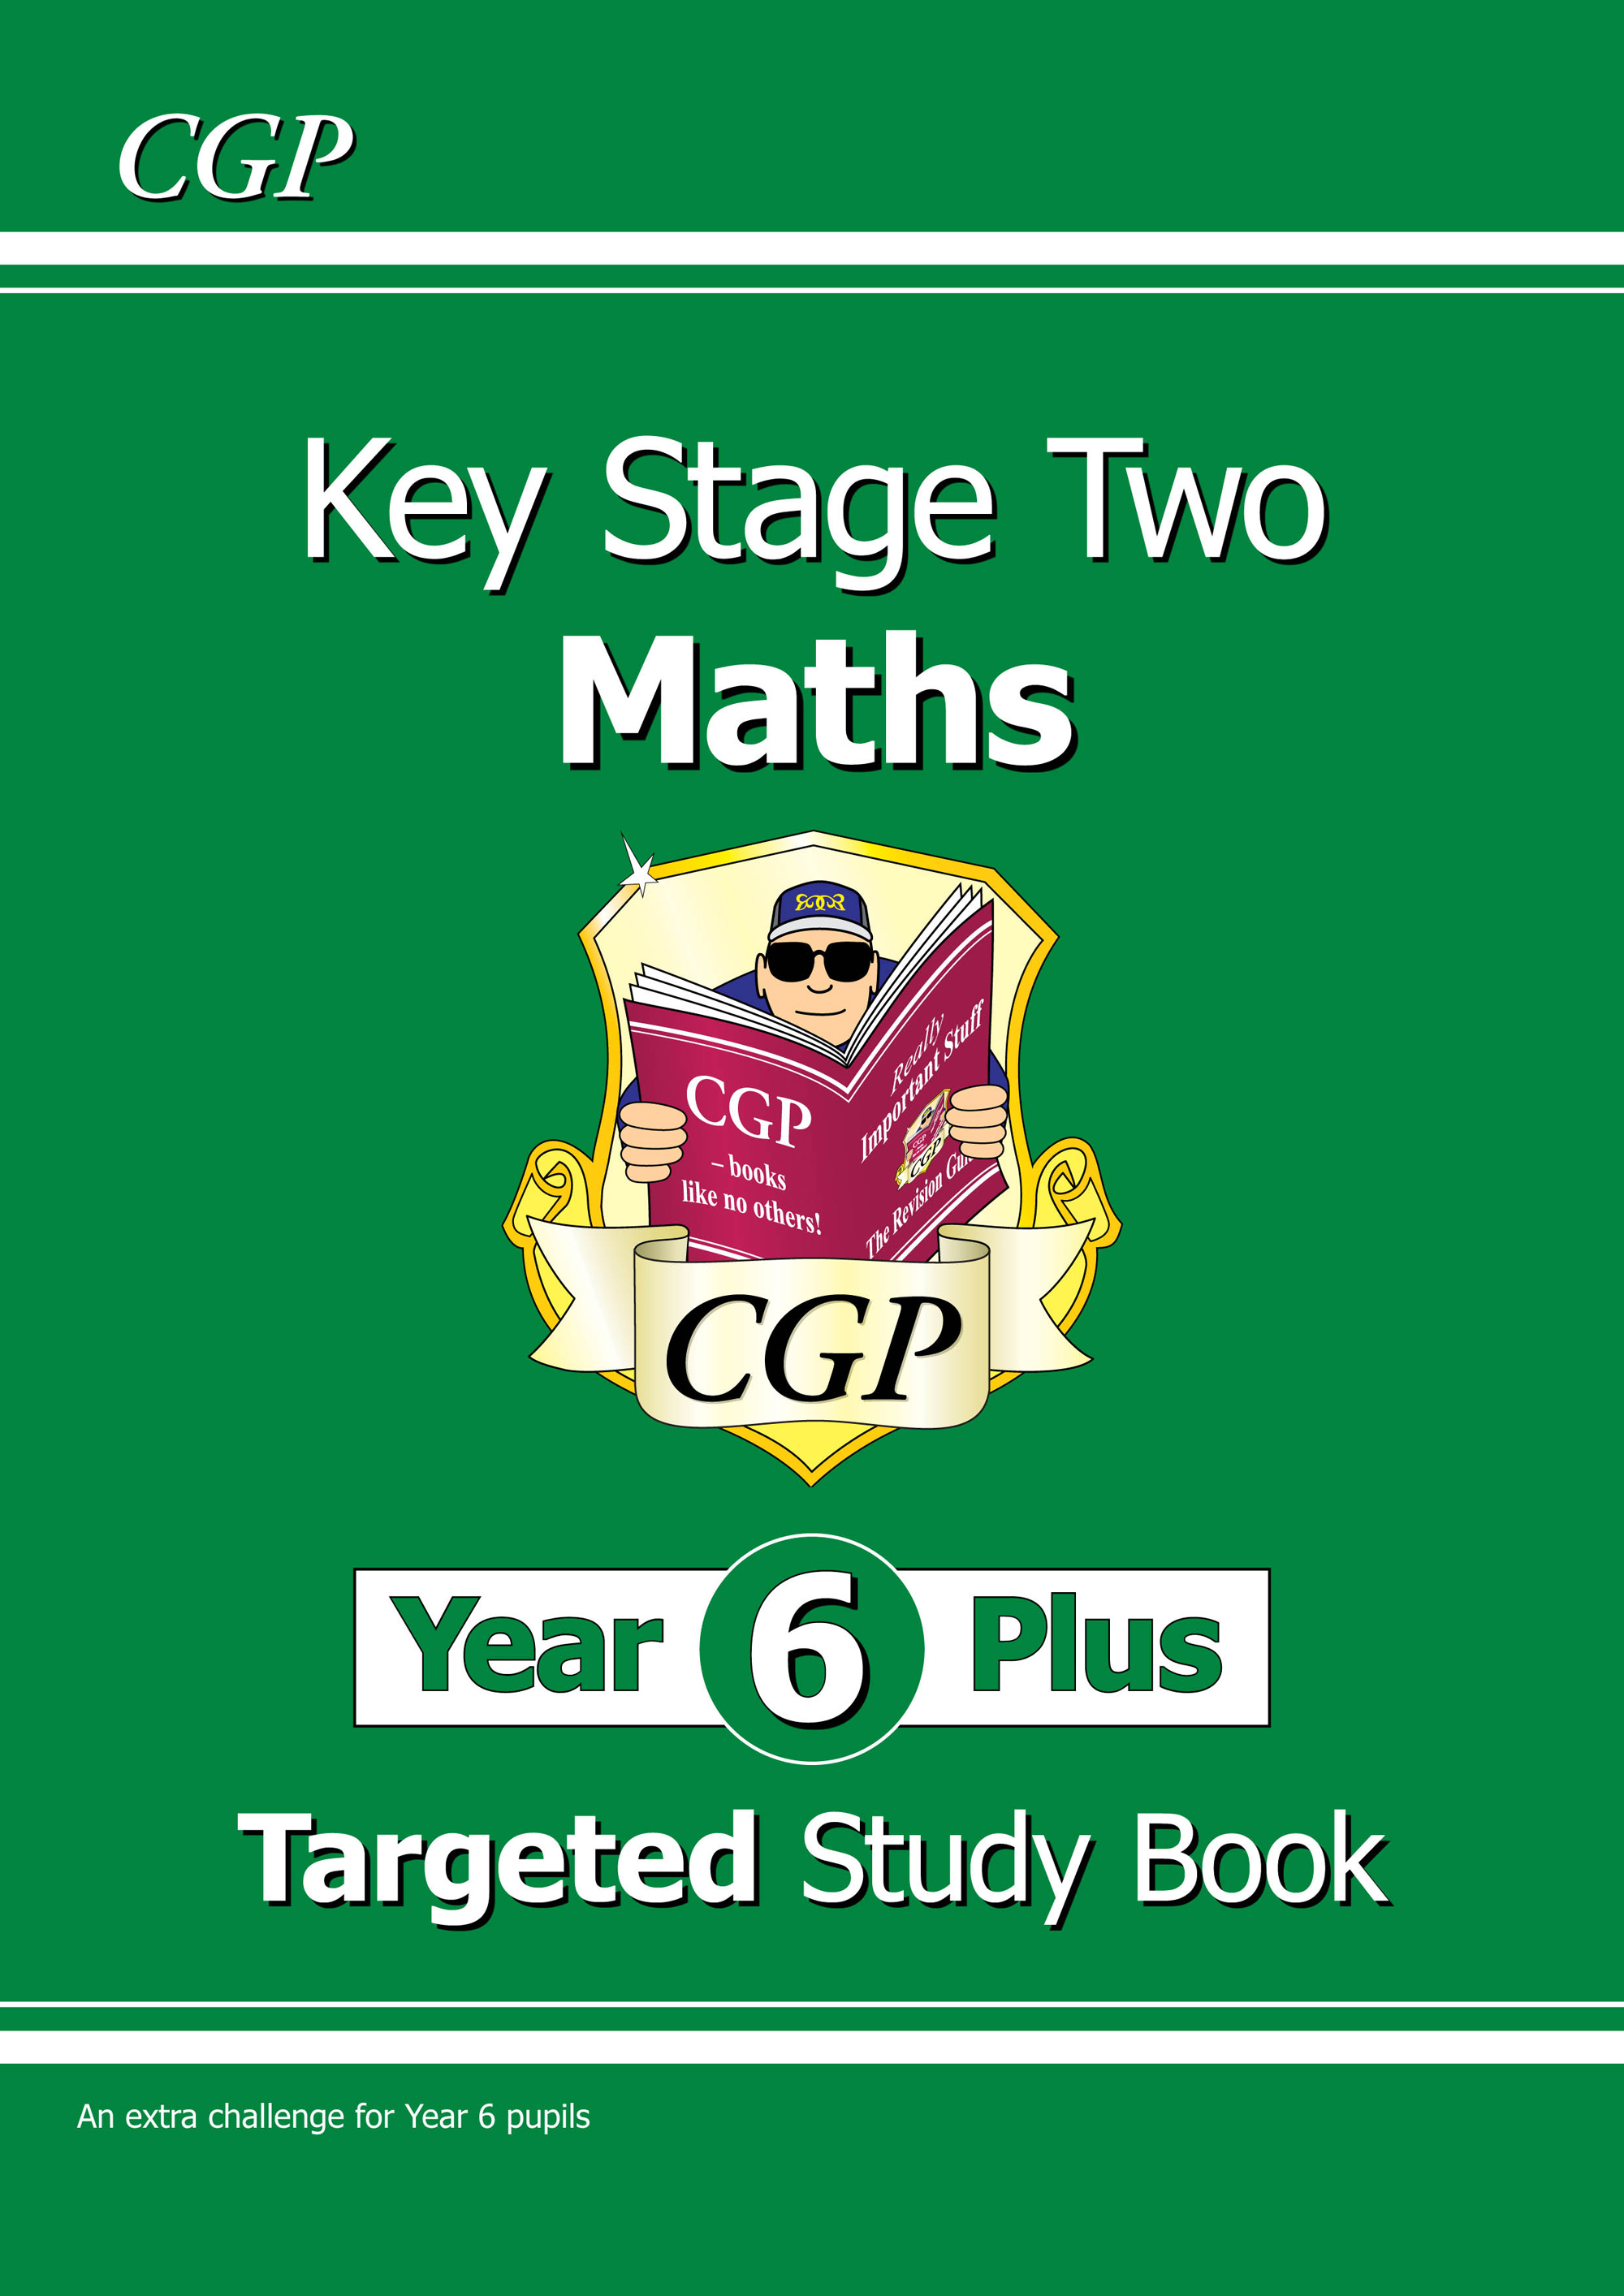 M7R21DK - KS2 Maths Targeted Study Book - Year 6+, Challenging Maths for Year 6 Pupils